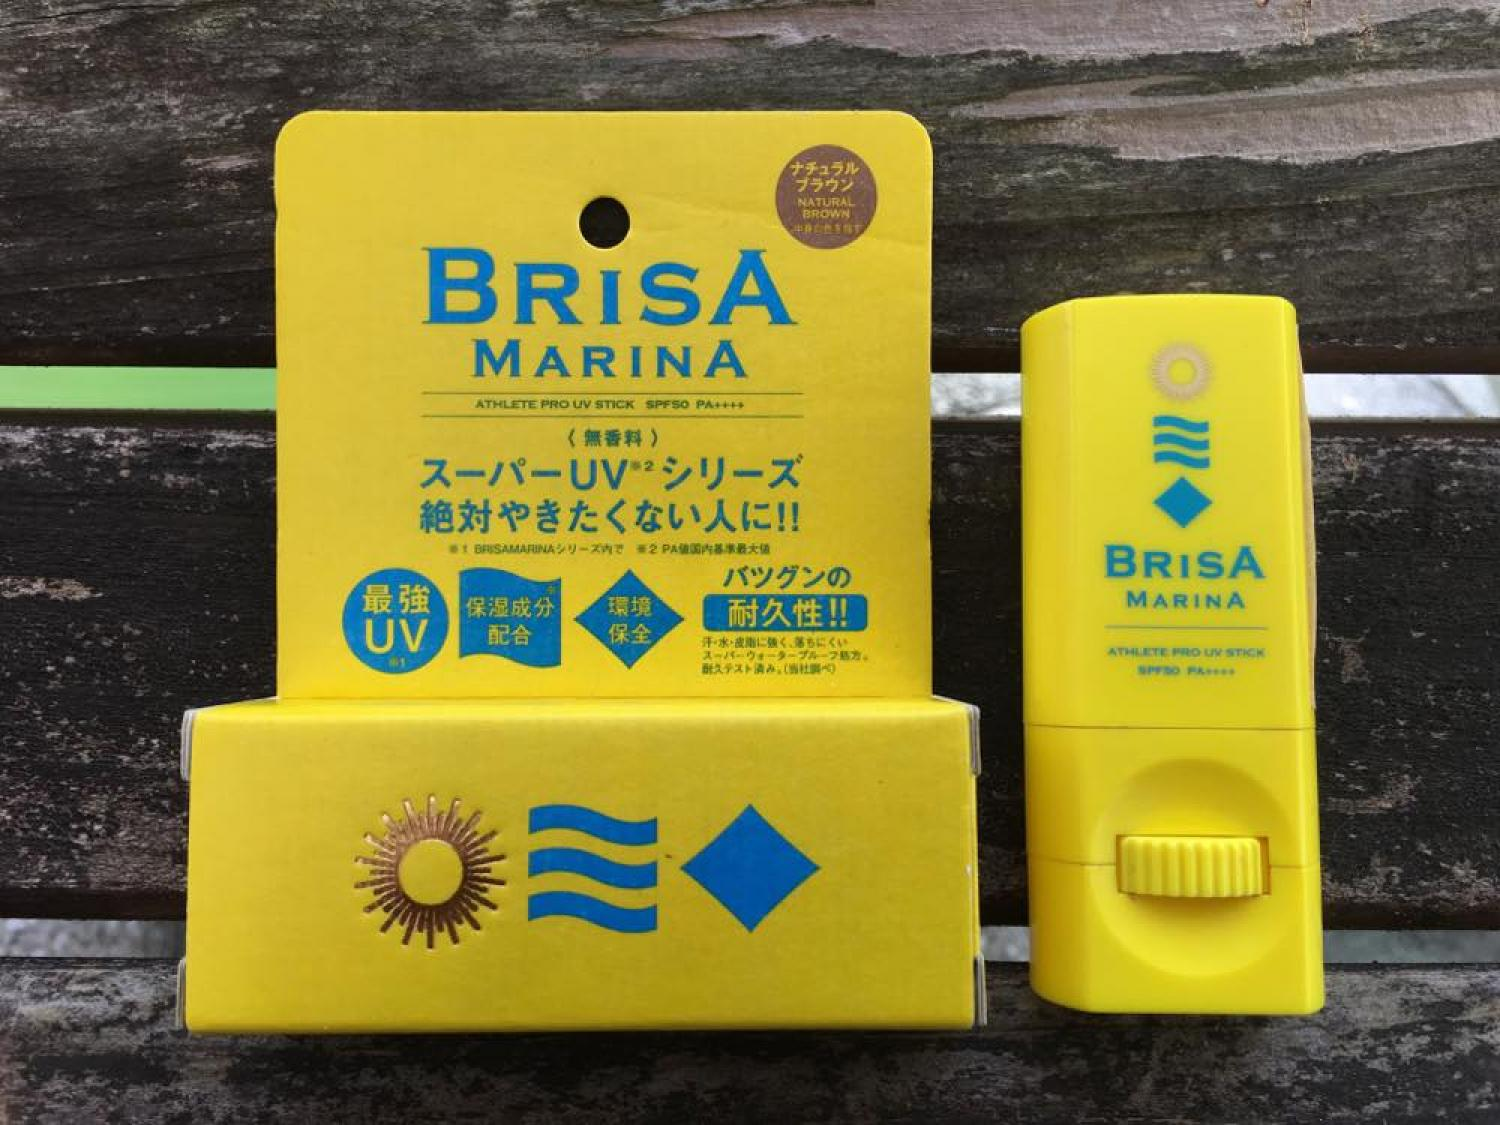 BRISA MARINA ATHLETE PRO UV STICK BROWN